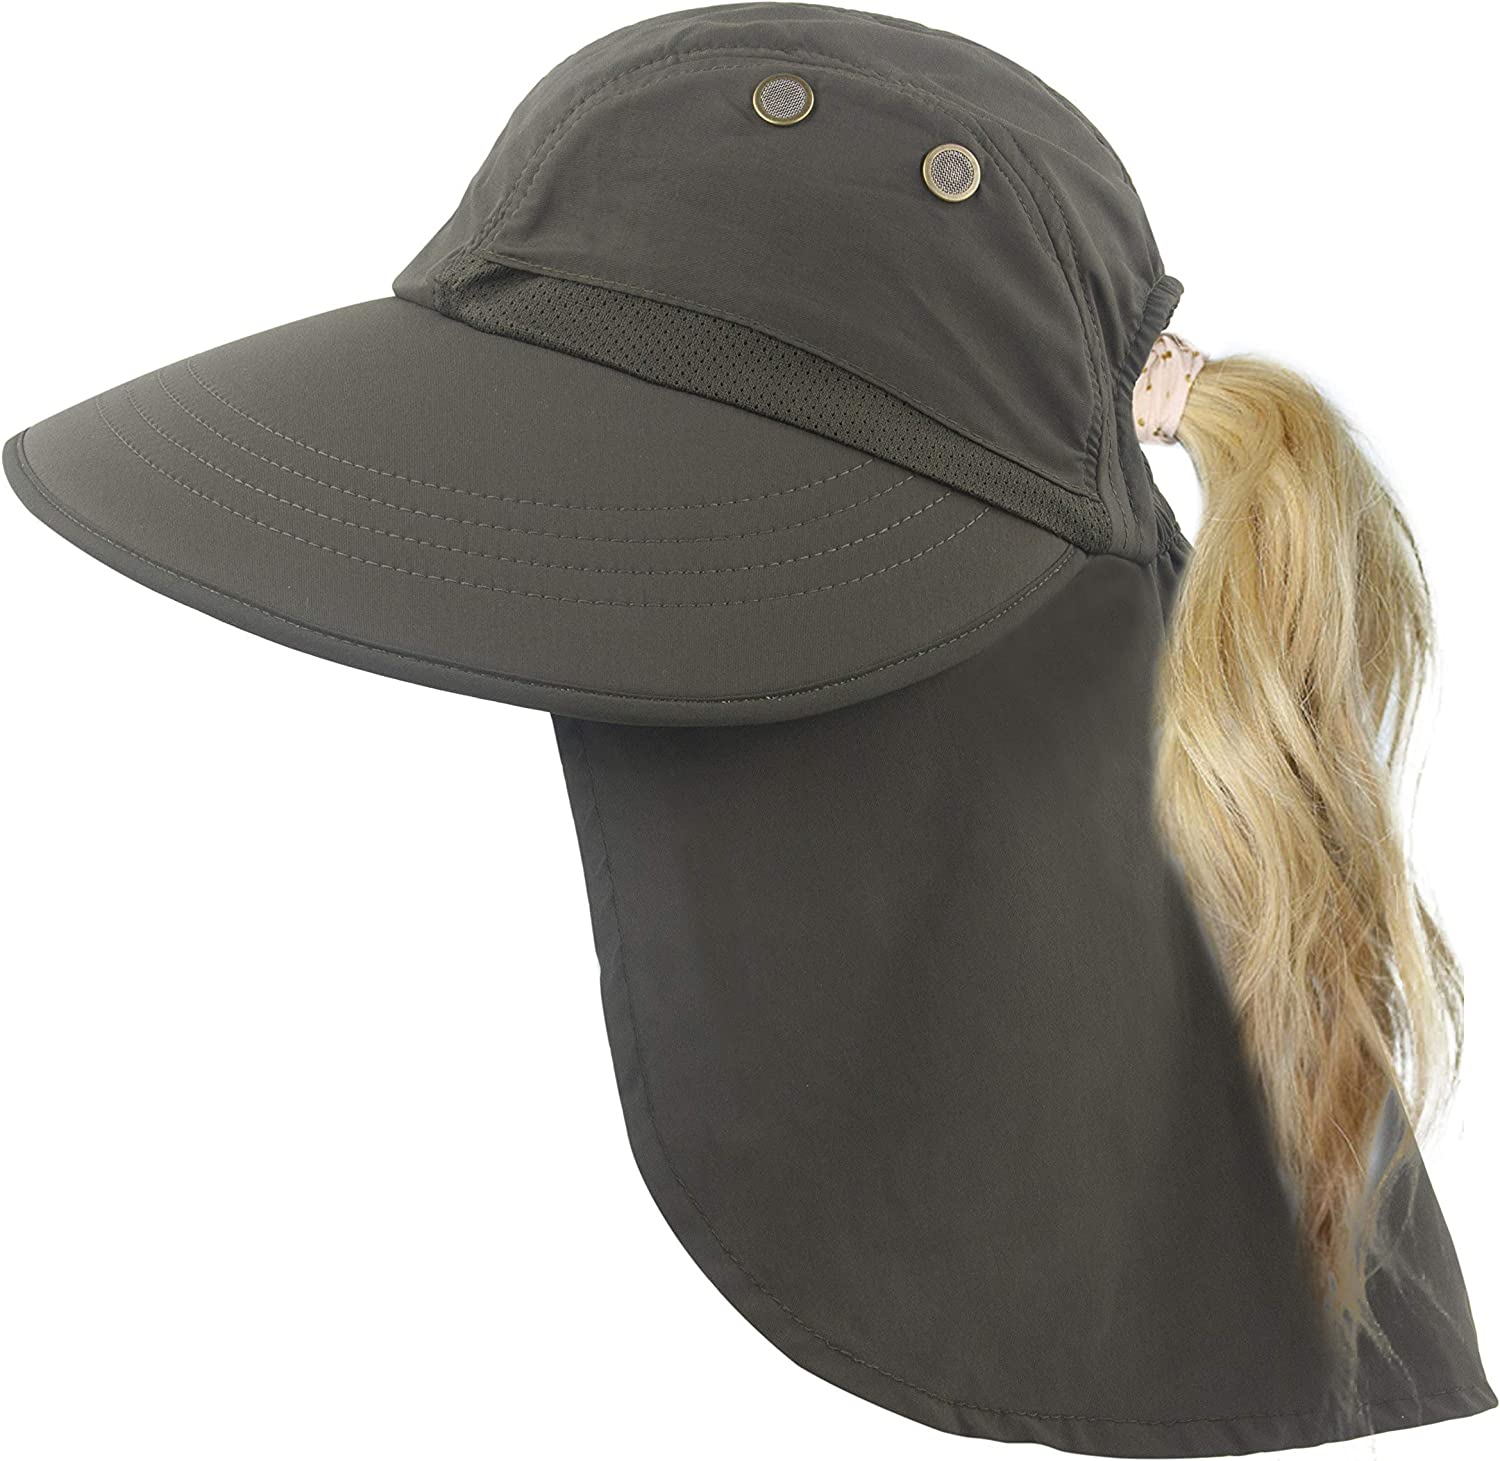 store Sun Hat with Ponytail Hole for Women Neck Max 46% OFF Fishing Flap